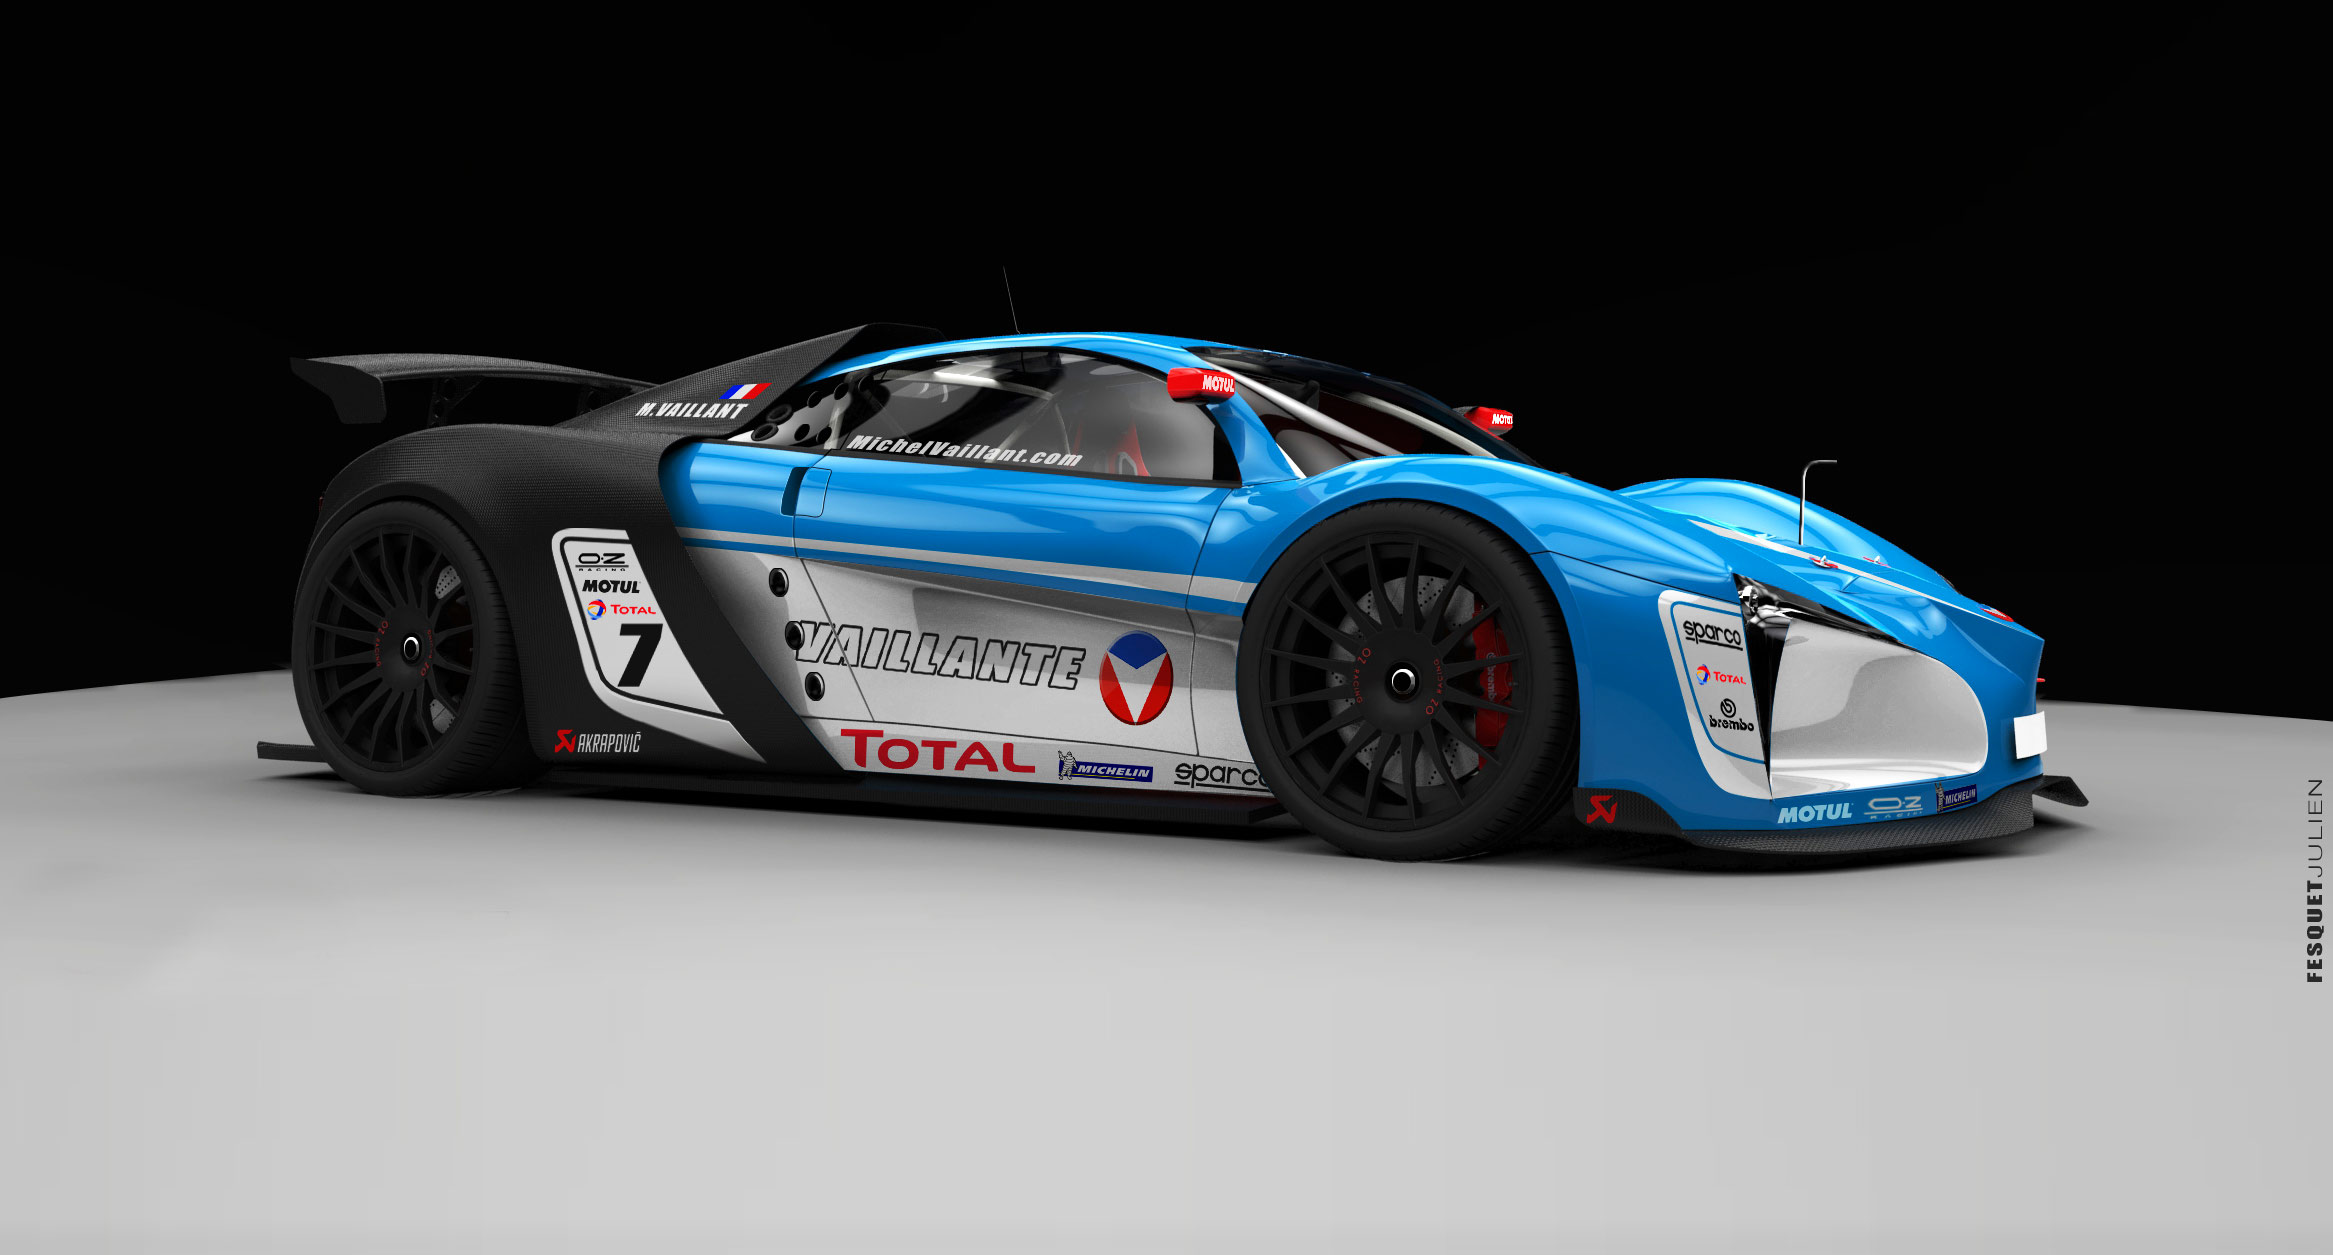 Vaillante-GT-race-car-Vaillante-GT3